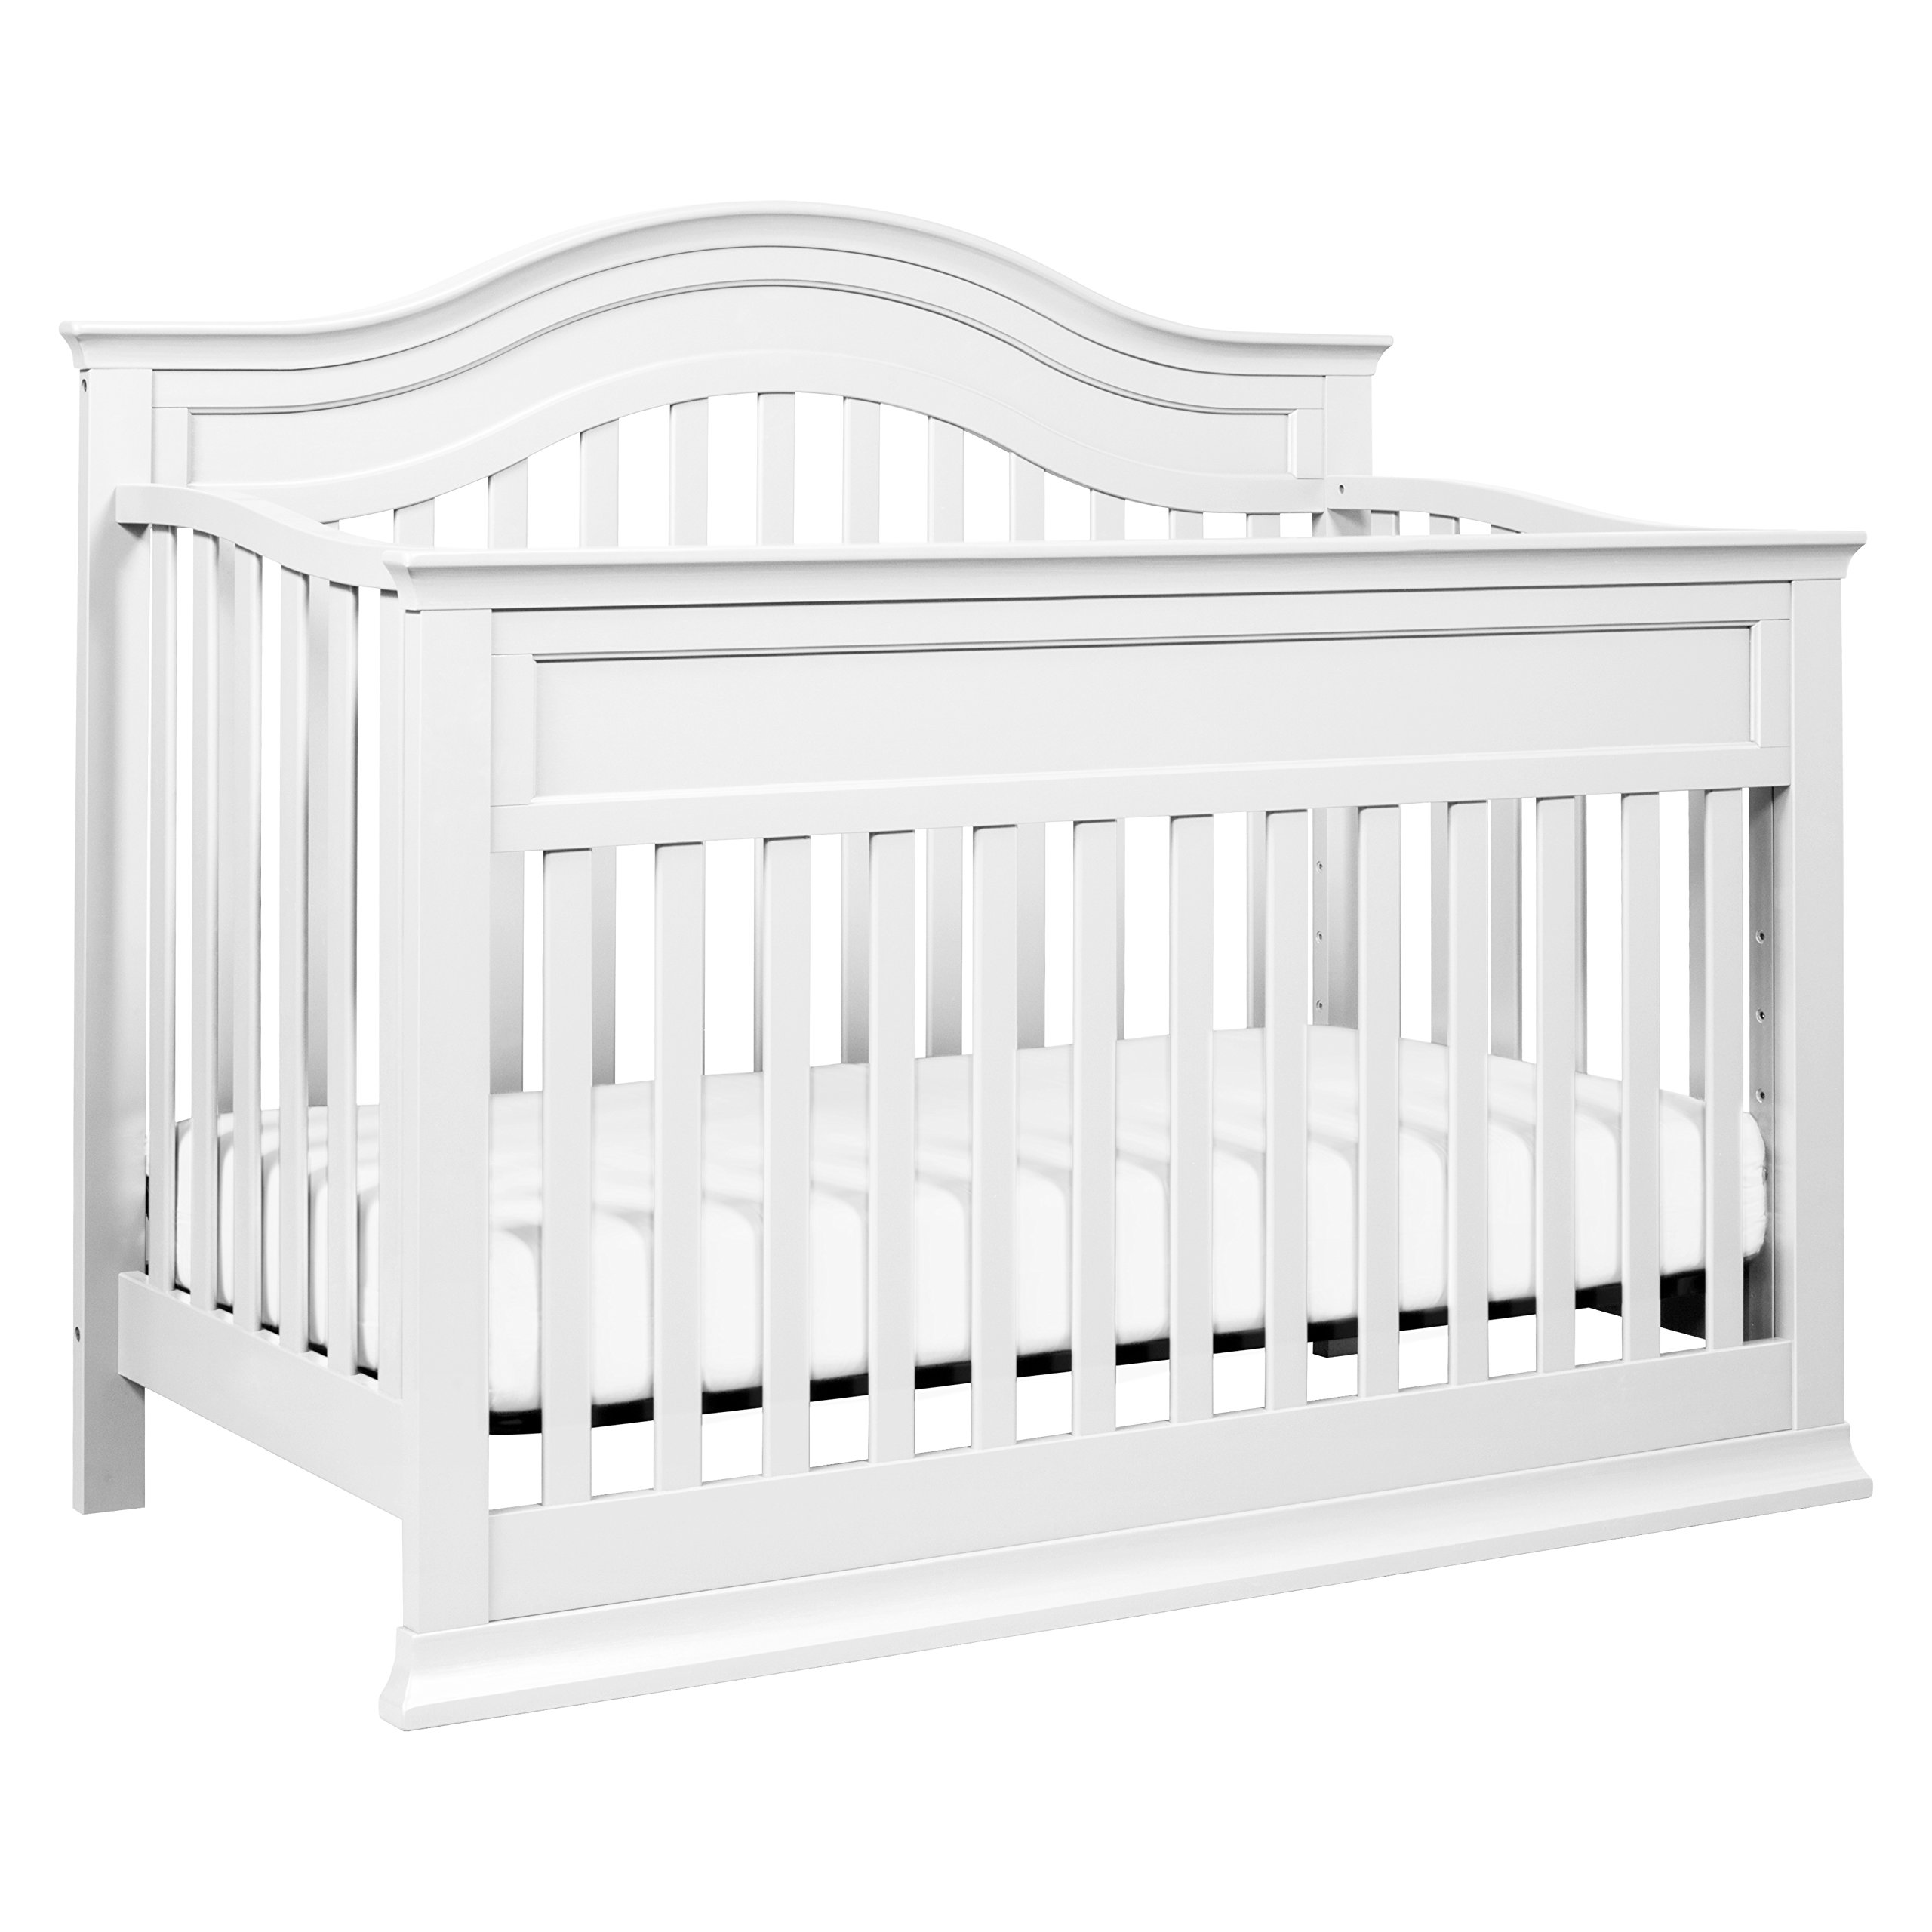 stationary in adore convertible pristine headboards bed crib davinci jenny diy famed zq twin cribs four headboard lind to